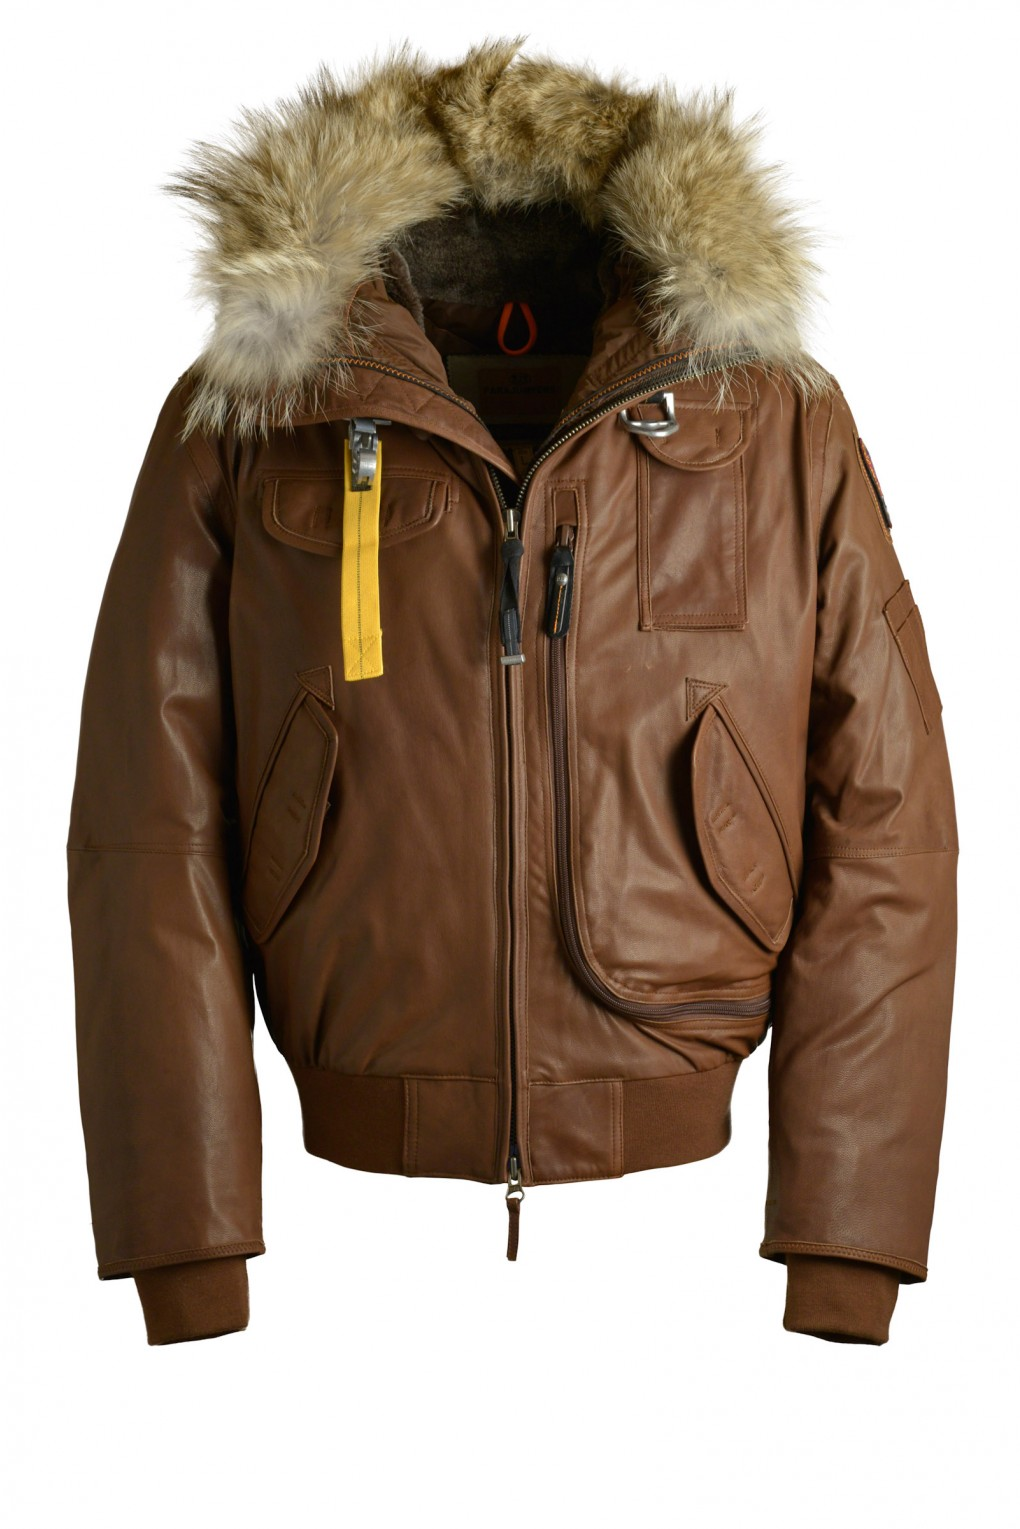 parajumpers GOBI LEATHER man outerwear Brown